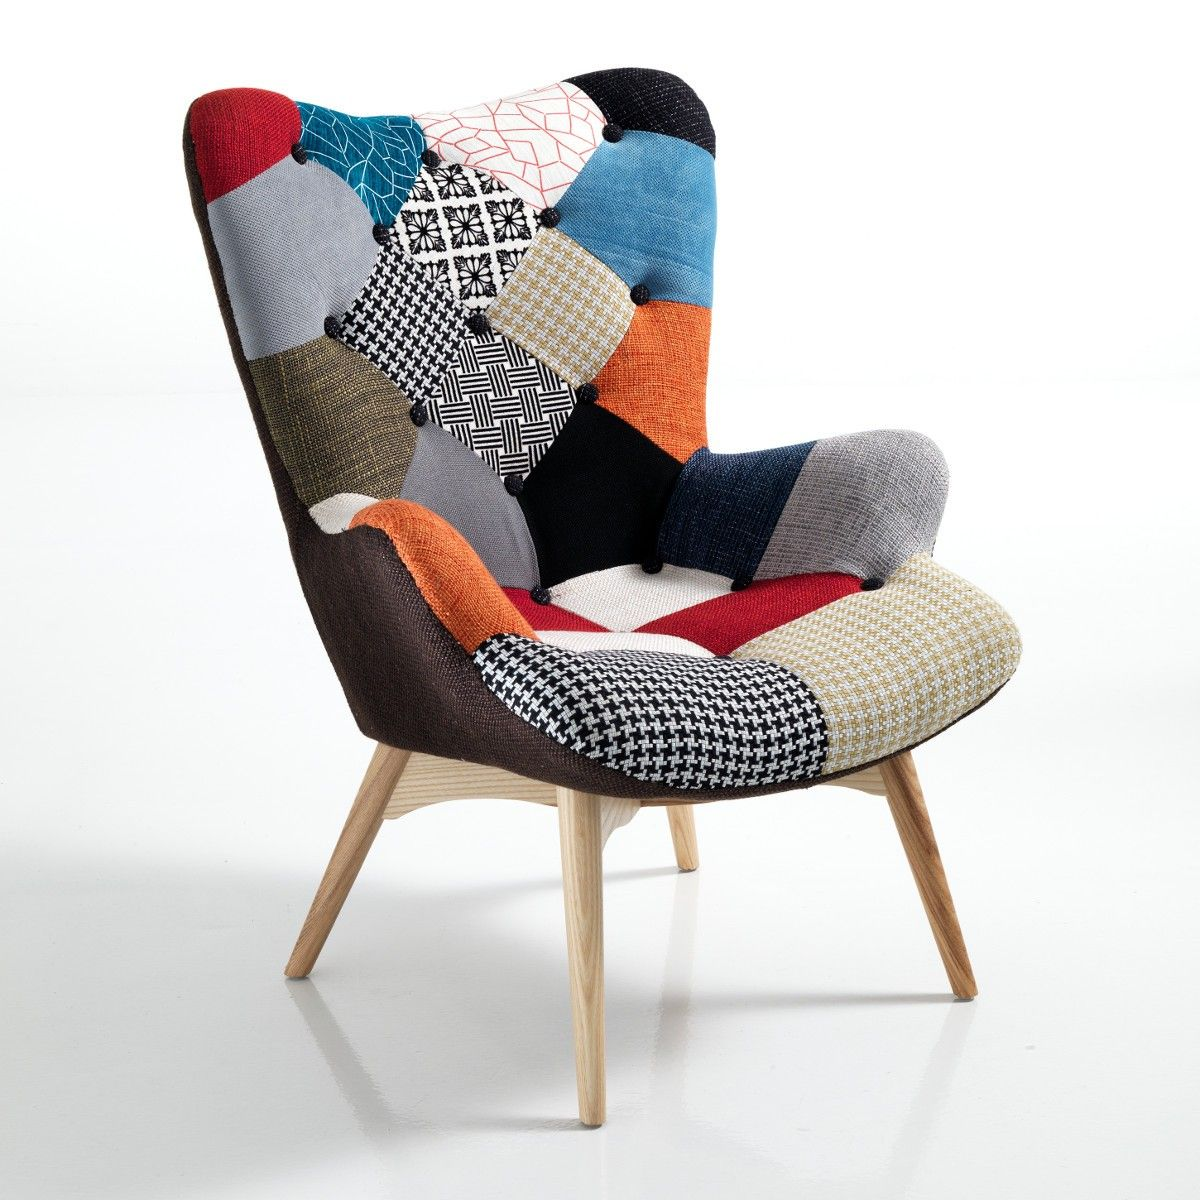 Poltroncina patchwork colormix in tessuto multicolor e - Sedia per camera da letto ...